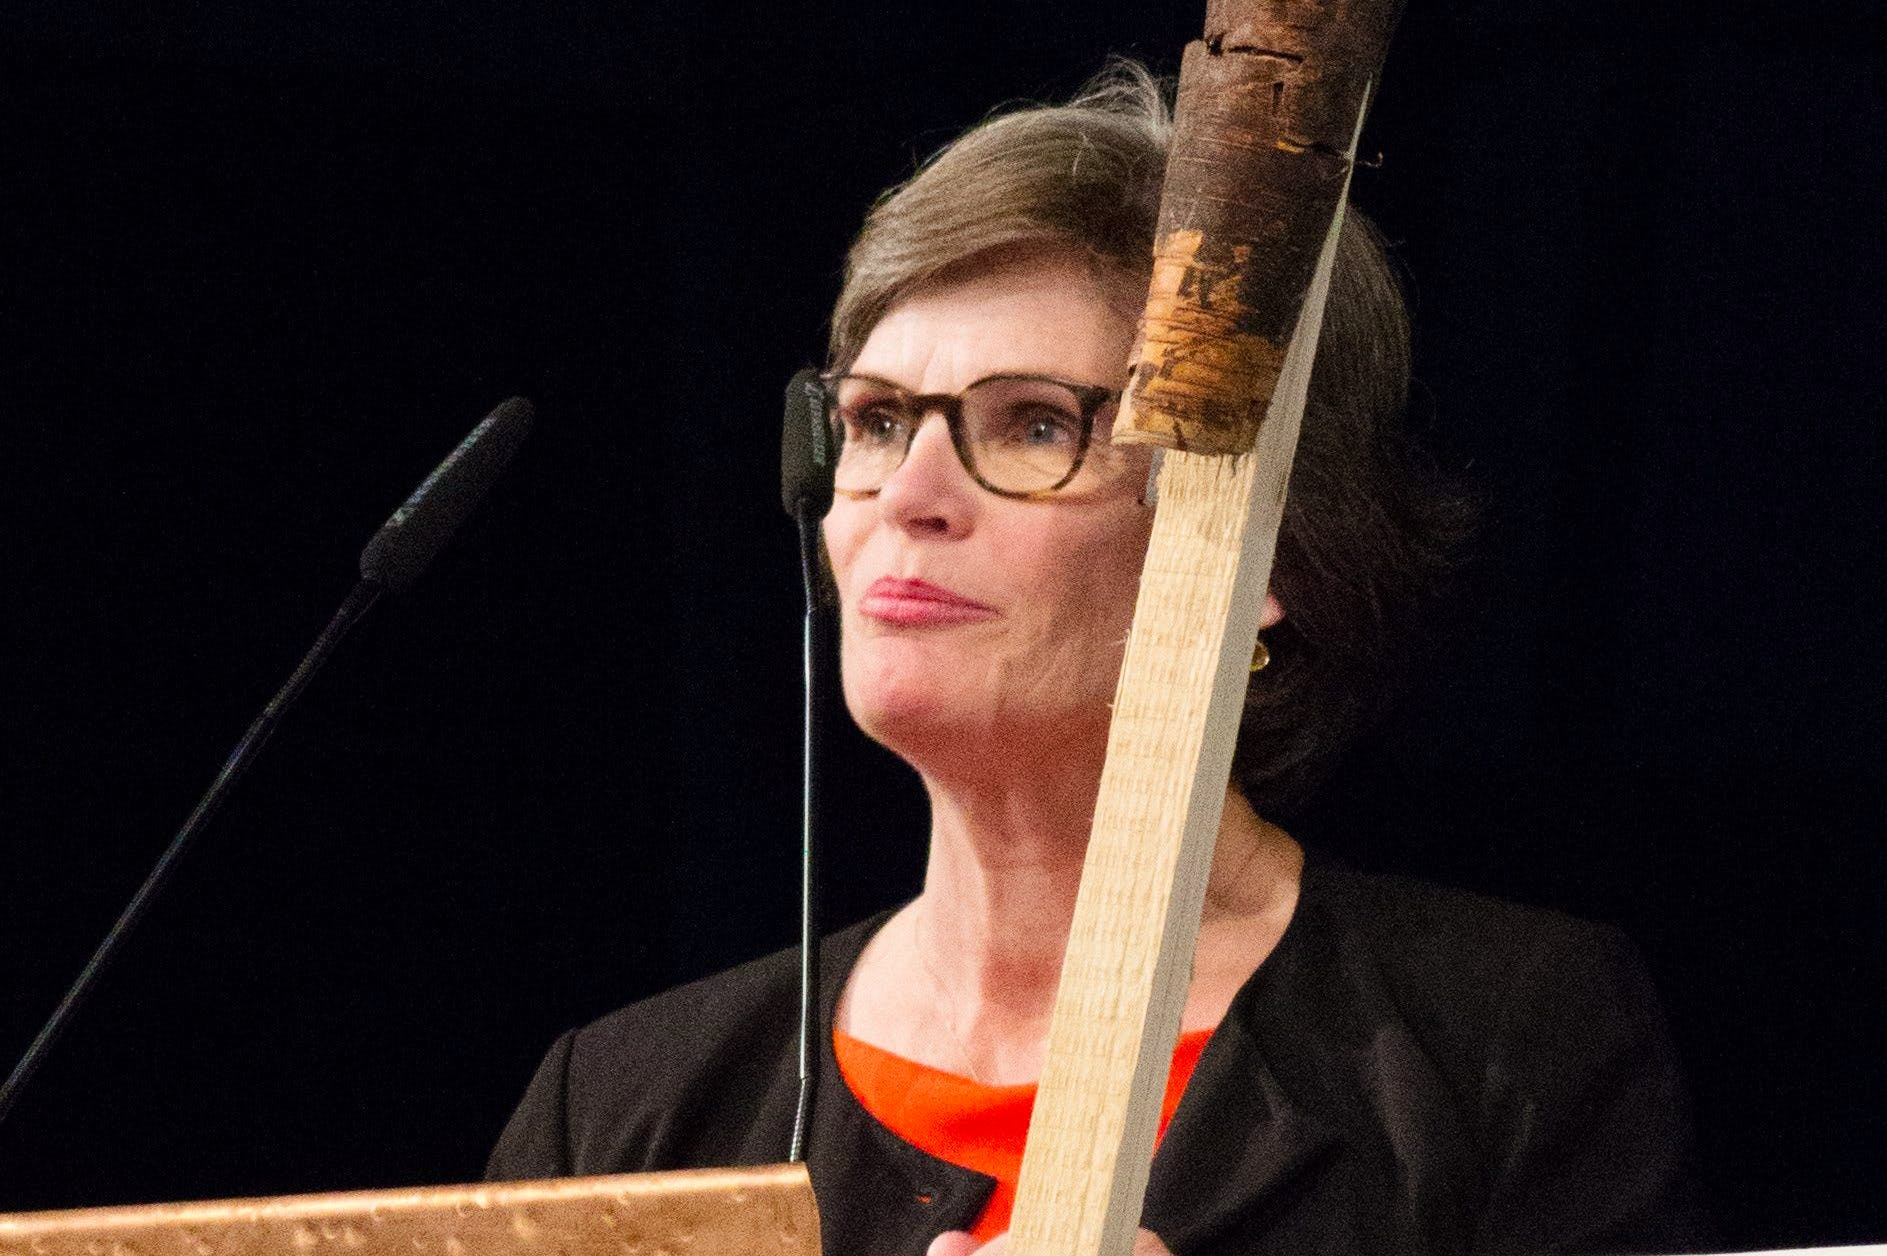 Annette Kulenkampff, CEO of Documenta, at a conference in Kassel